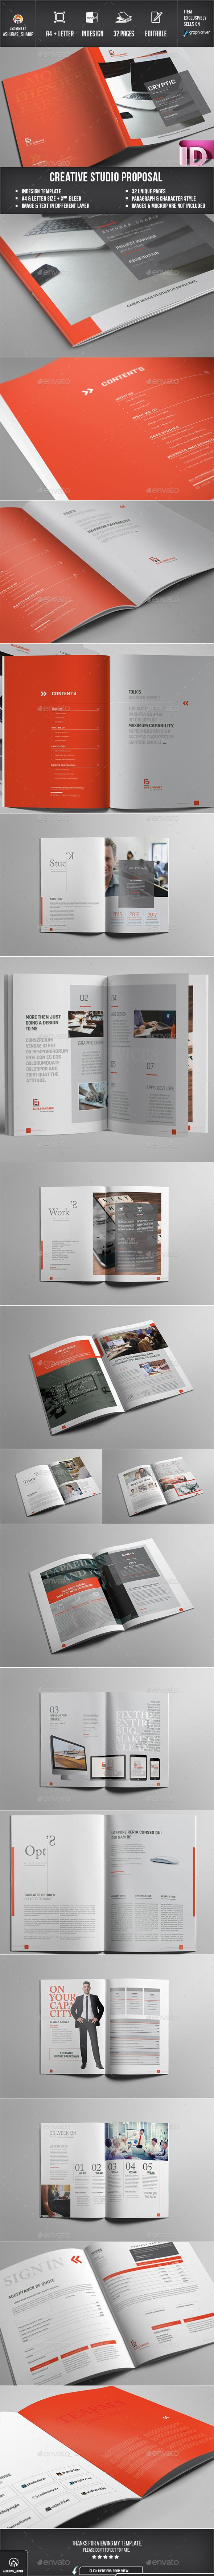 Proposal Proposal Design Booklet Design Proposal Templates